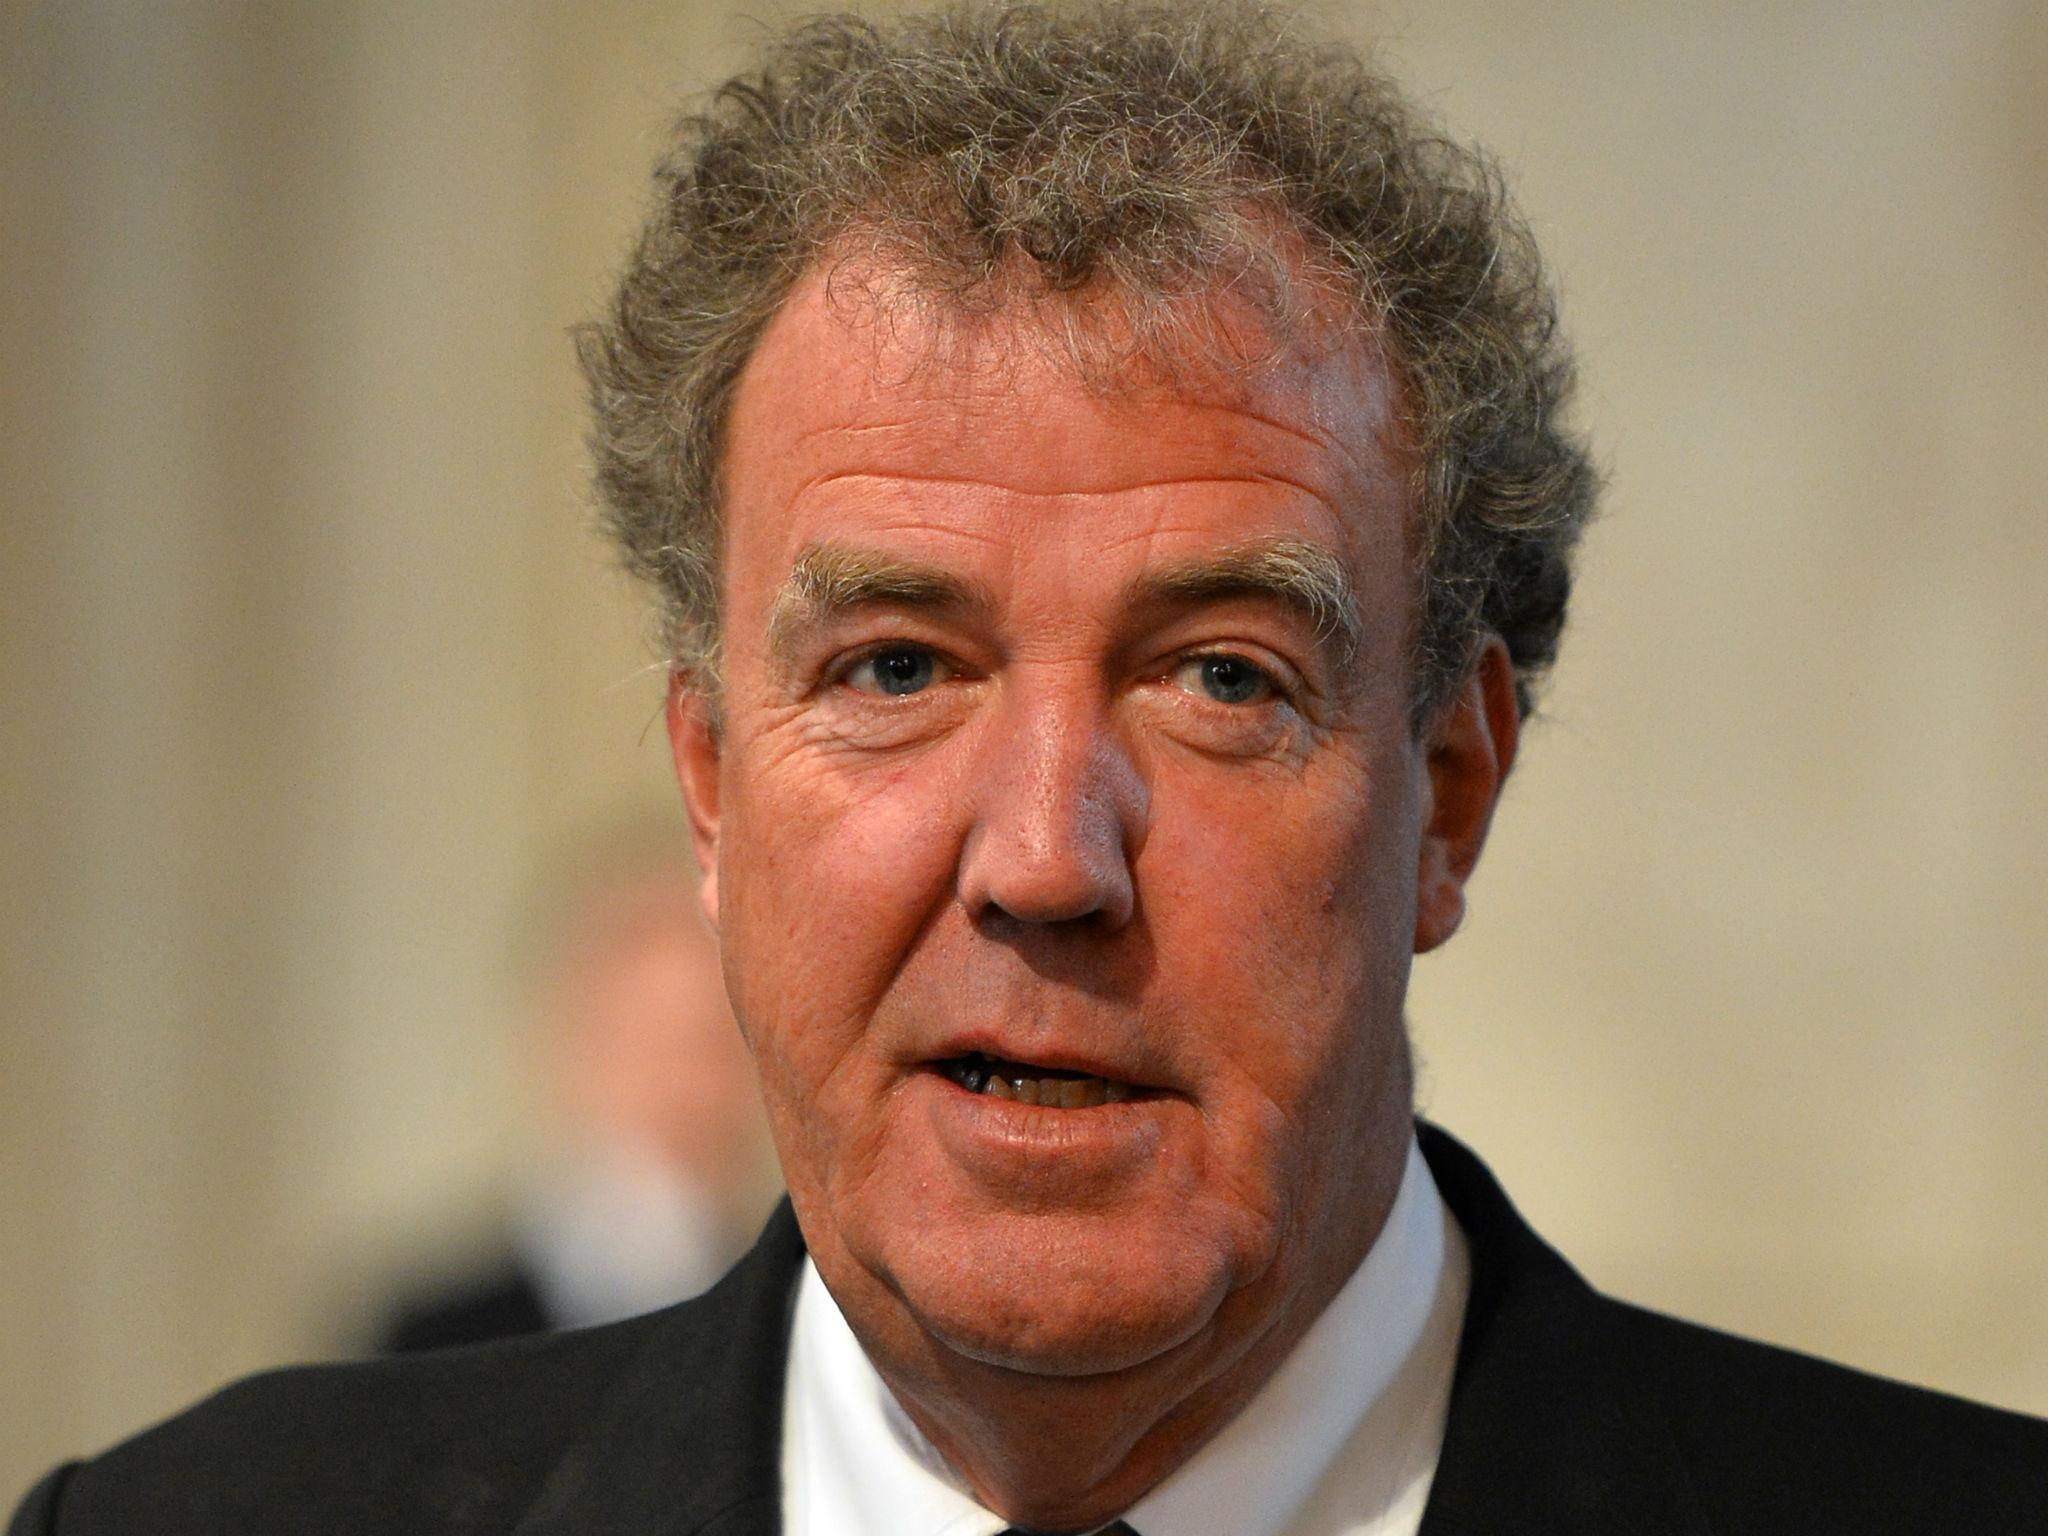 Jeremy Clarkson defends BBC top salaries: 'You get that for your ent…